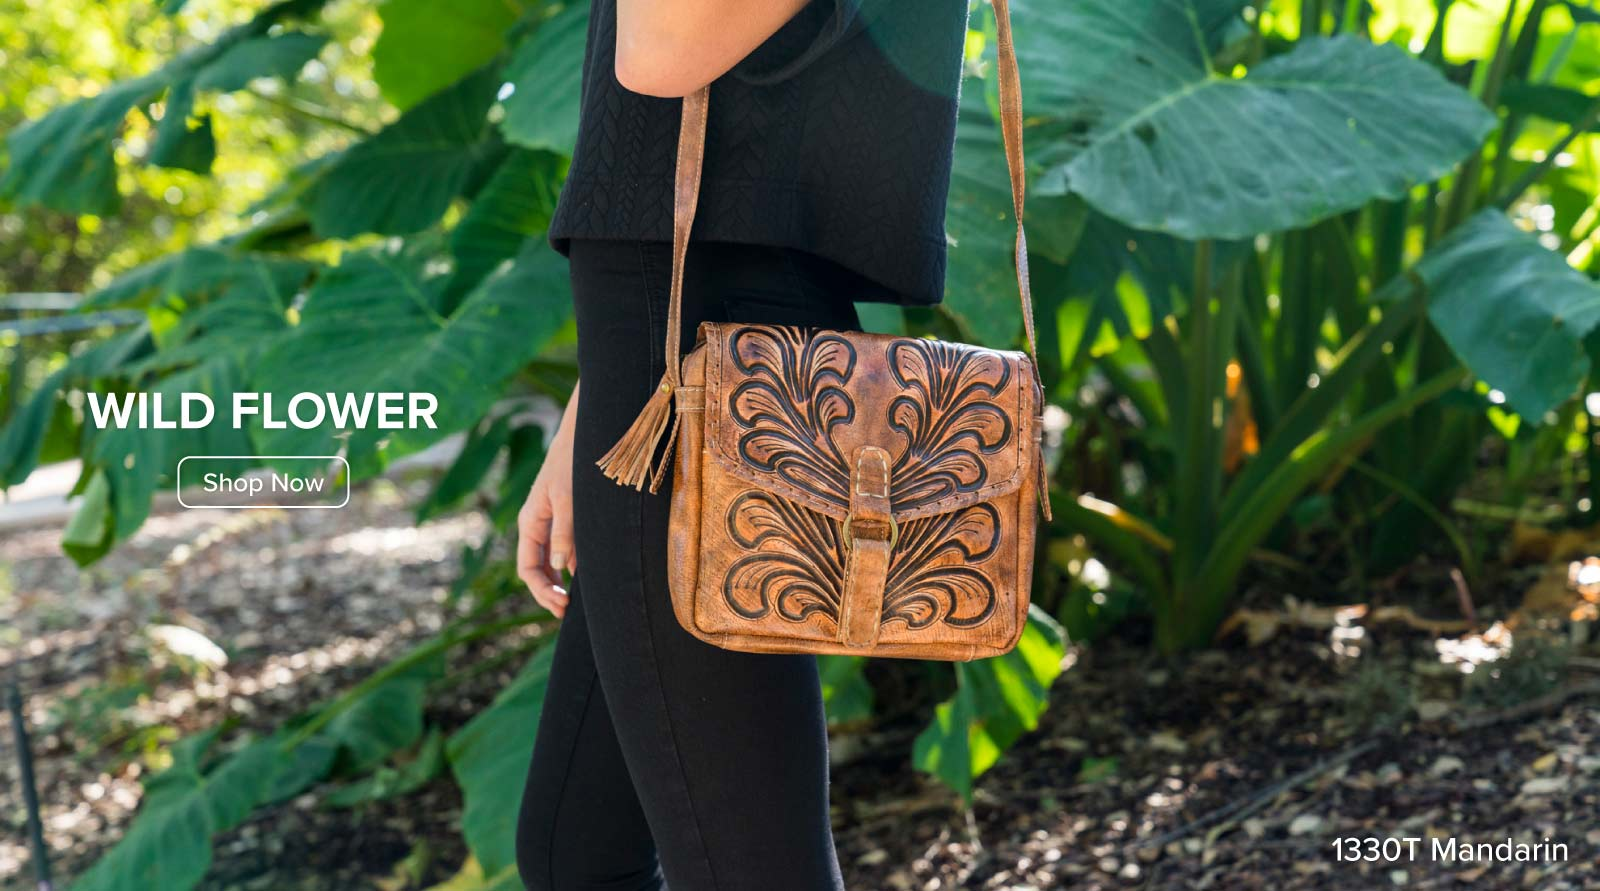 Wild Flower Leather Bags